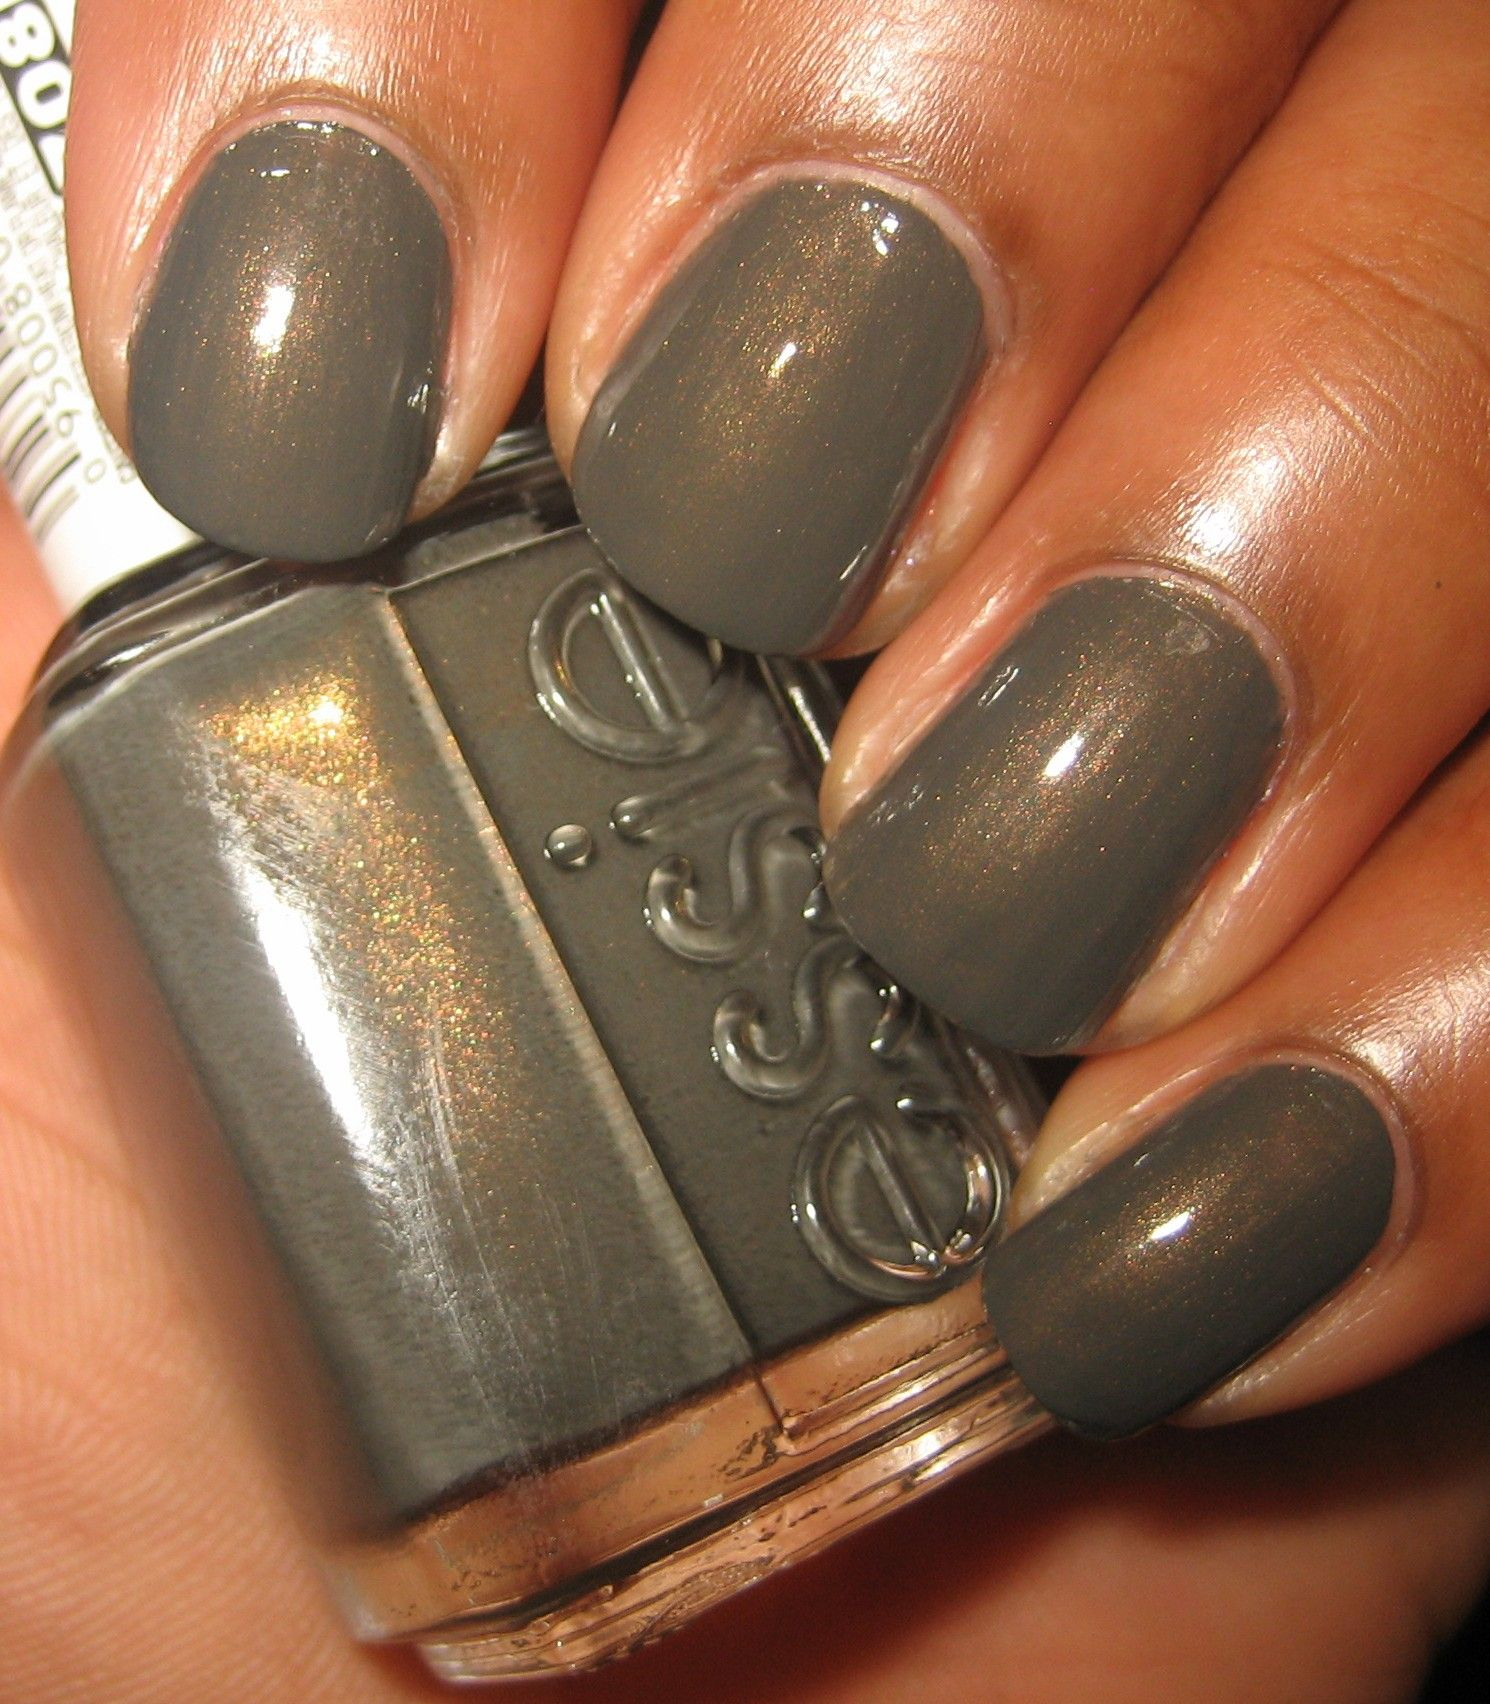 Essie: Armed and Ready   Great color for fall!